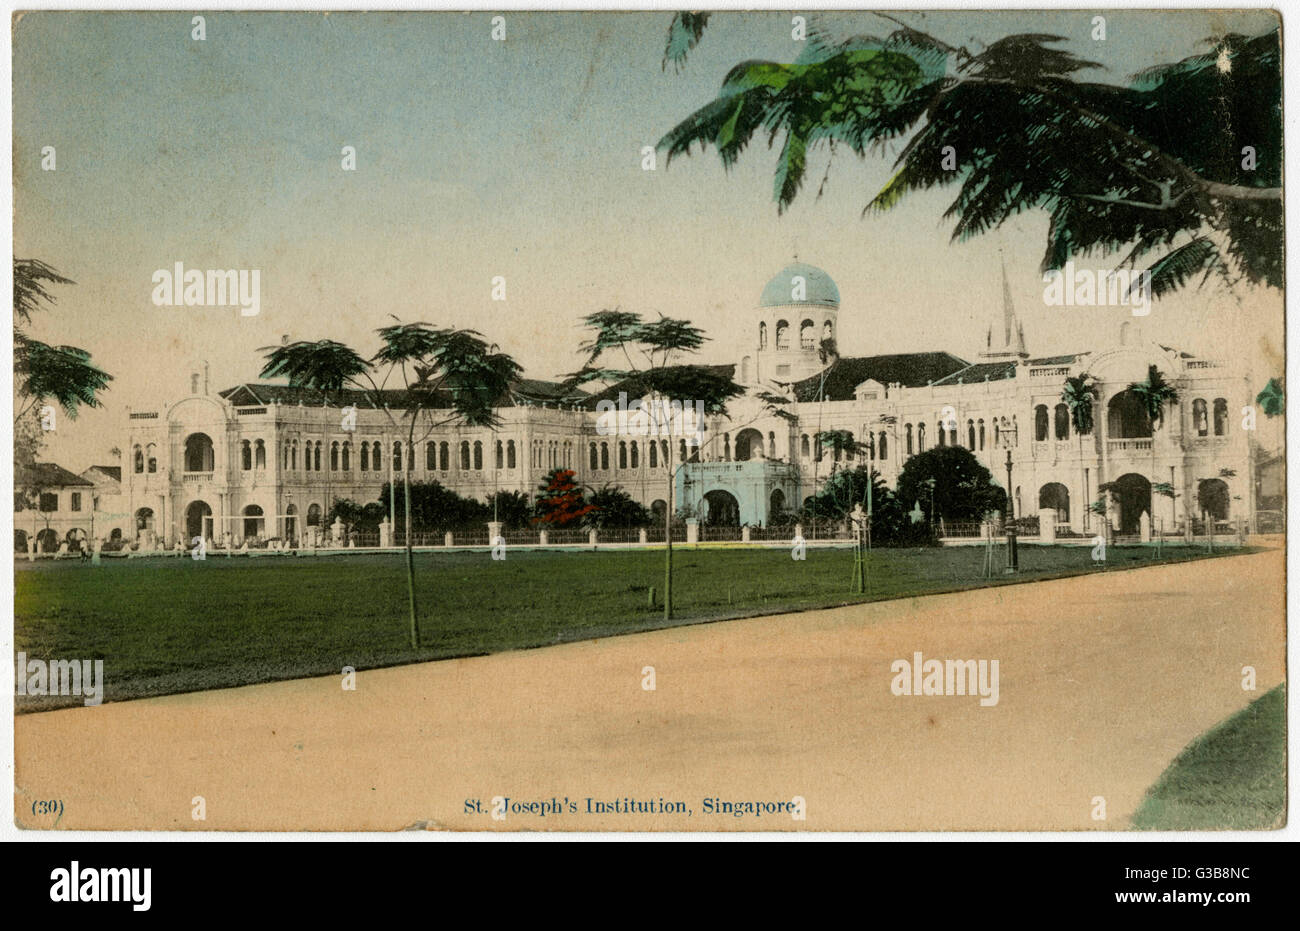 St Joseph's Institution         Date: early 20th century? - Stock Image